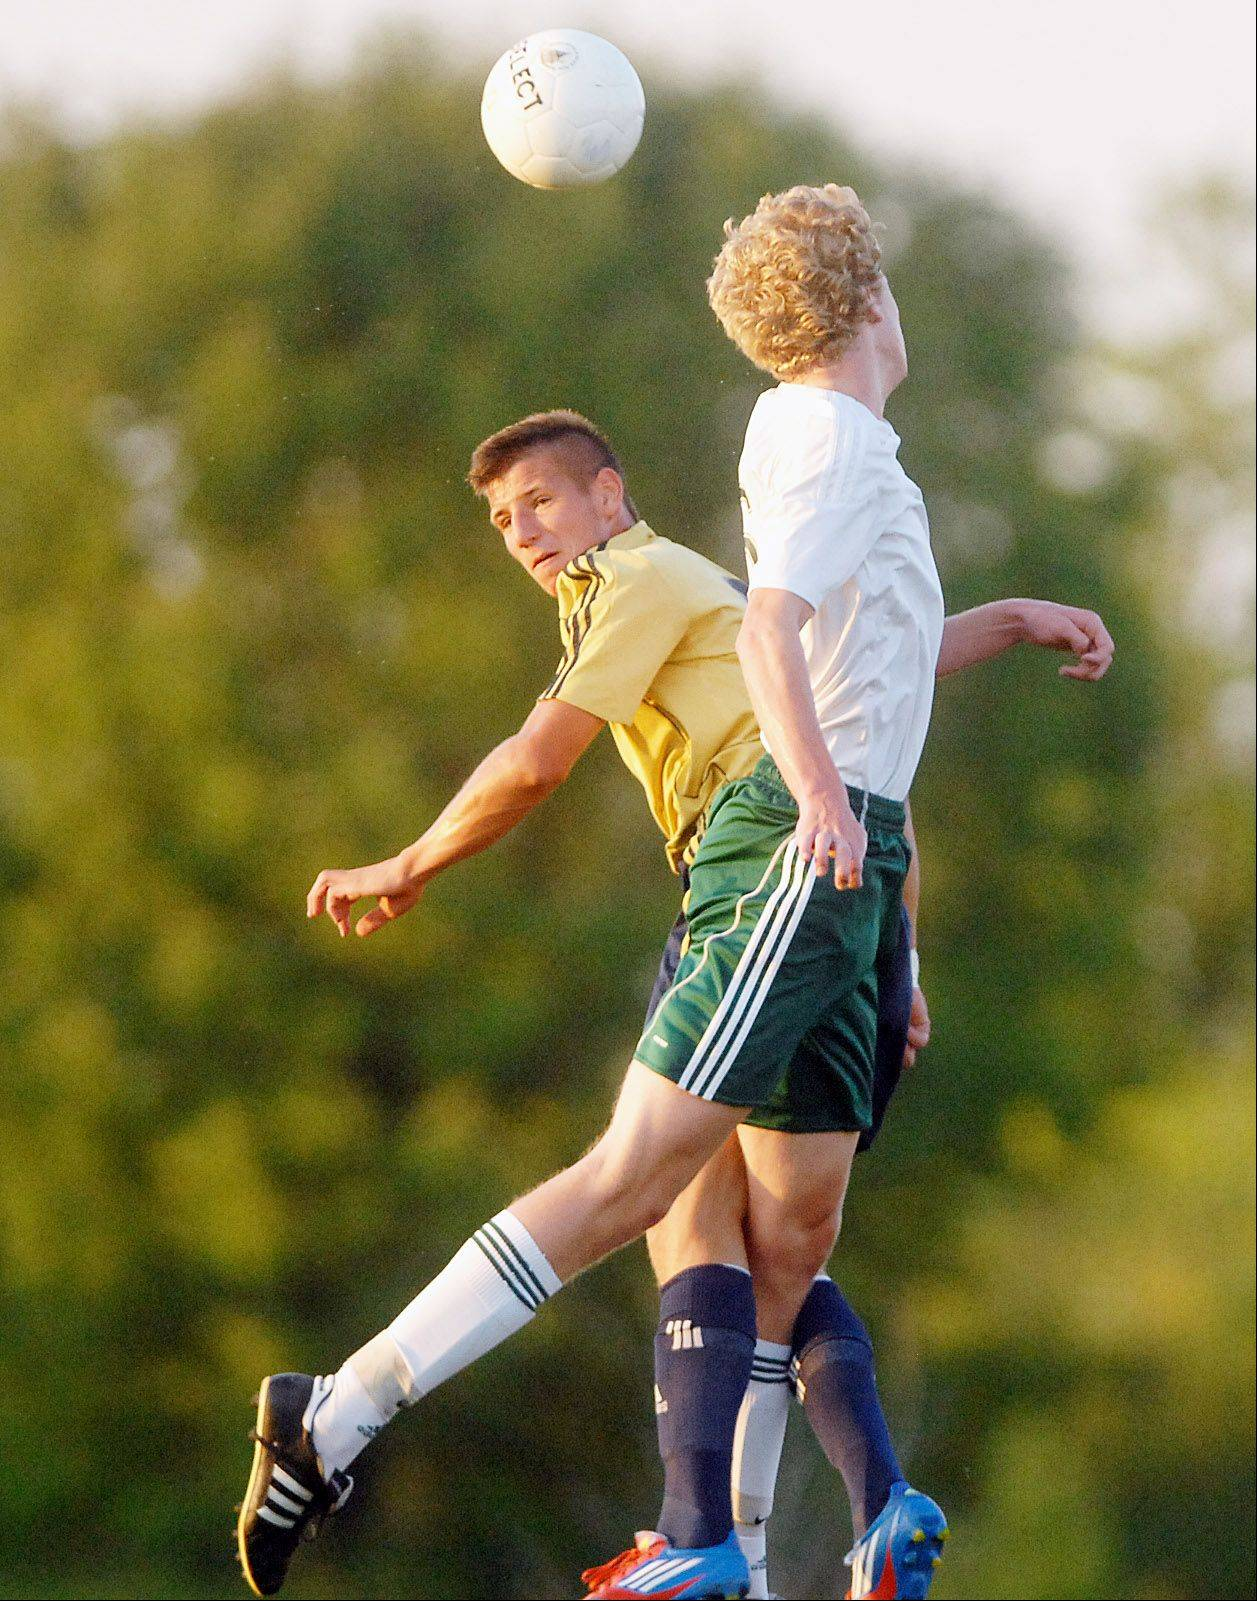 Jake Loncar of Neuqua,left, and Jack Cordes of Waubonsie go up for a ball during the Neuqua Vally at Waubonsie Valley boys Soccer game Thursday.